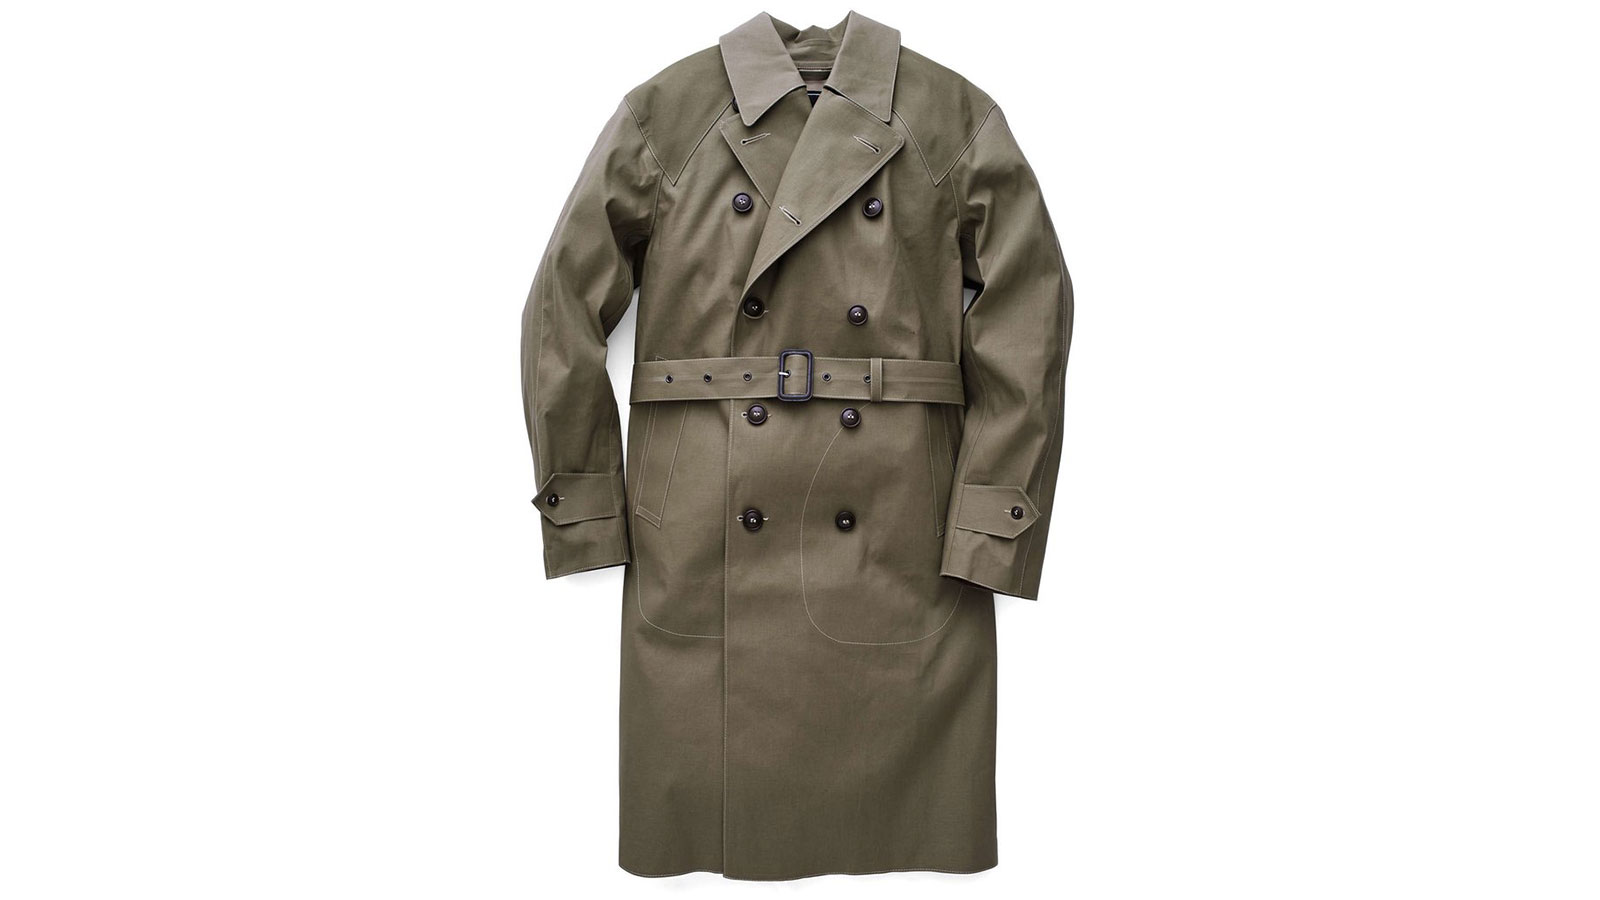 69c7b517a 15 of the Best Trench Coats For Men That You Can Dress Up or Down